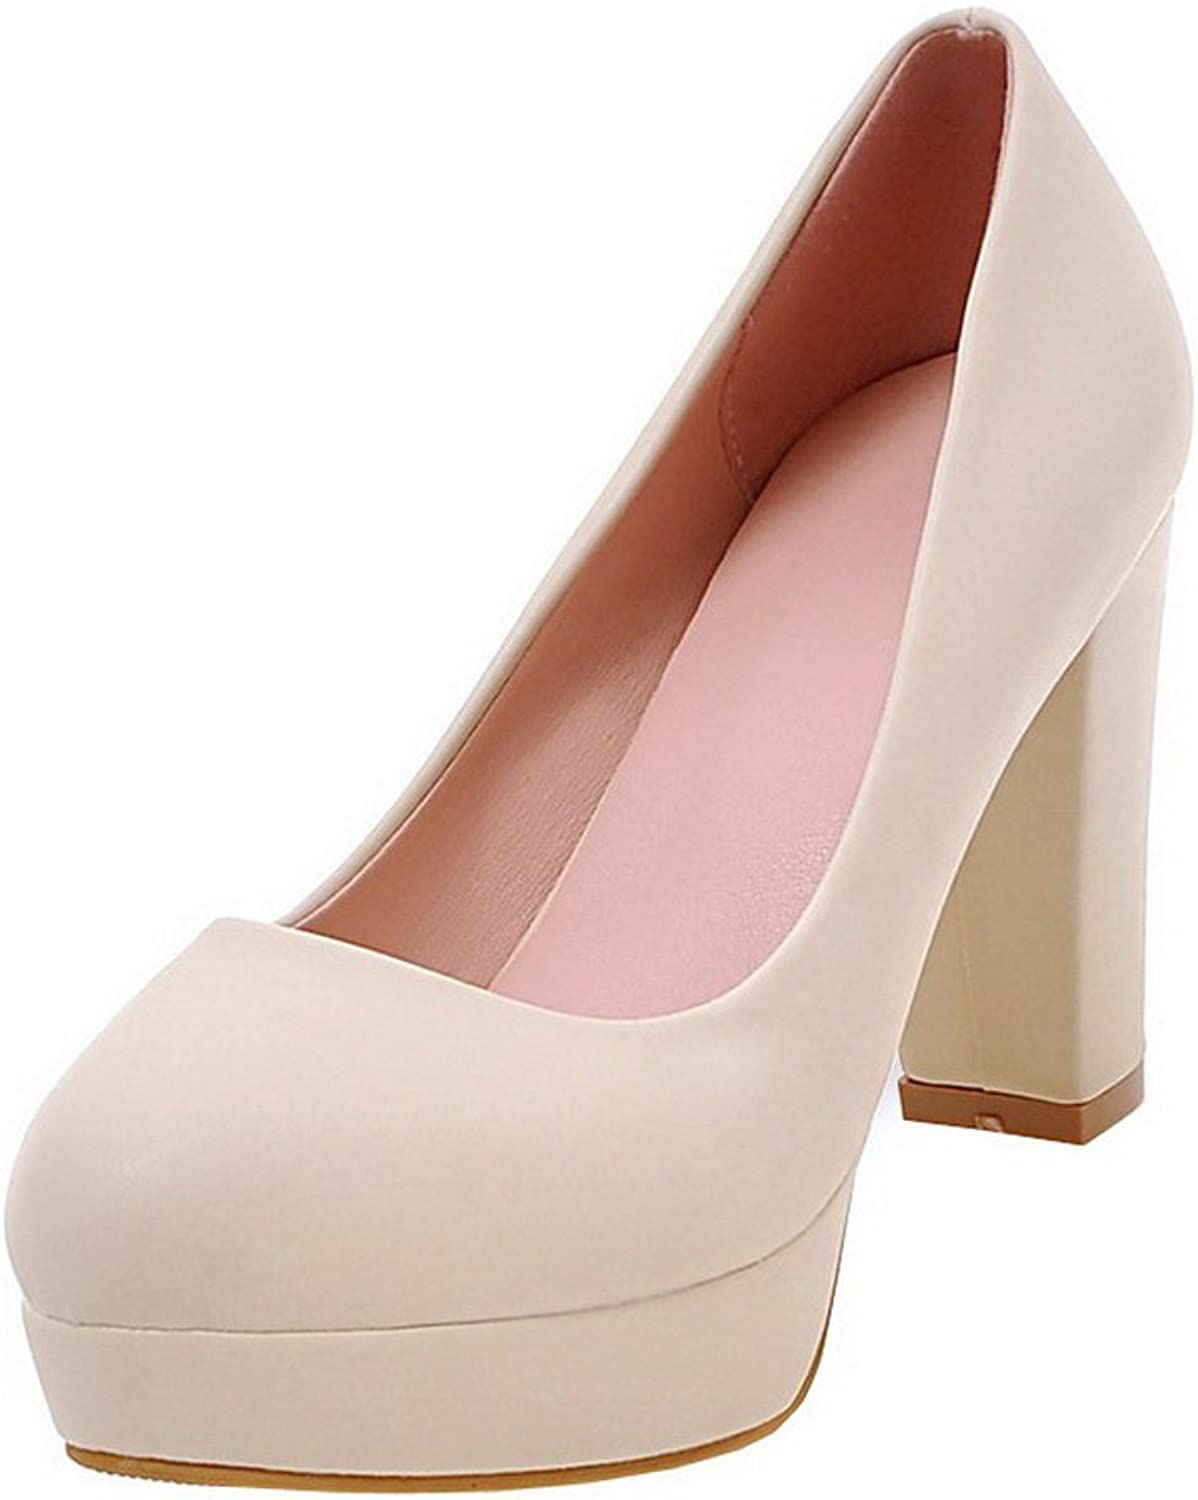 AmoonyFashion Women's PU Round Closed Toe High-Heels Pull-On Solid Pumps-shoes